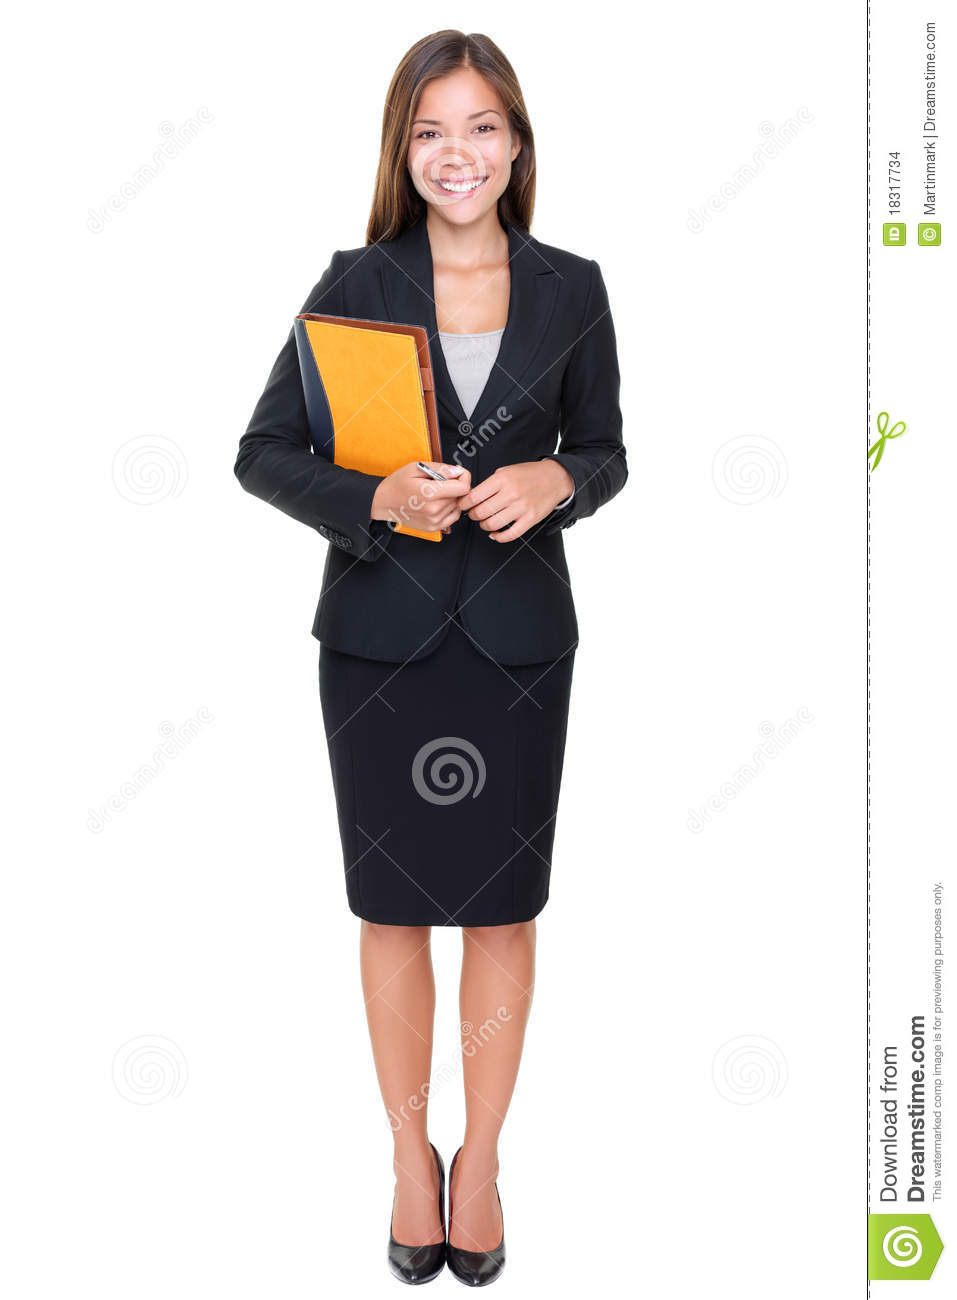 business-woman-real-estate-agent-standing-18317734.jpg